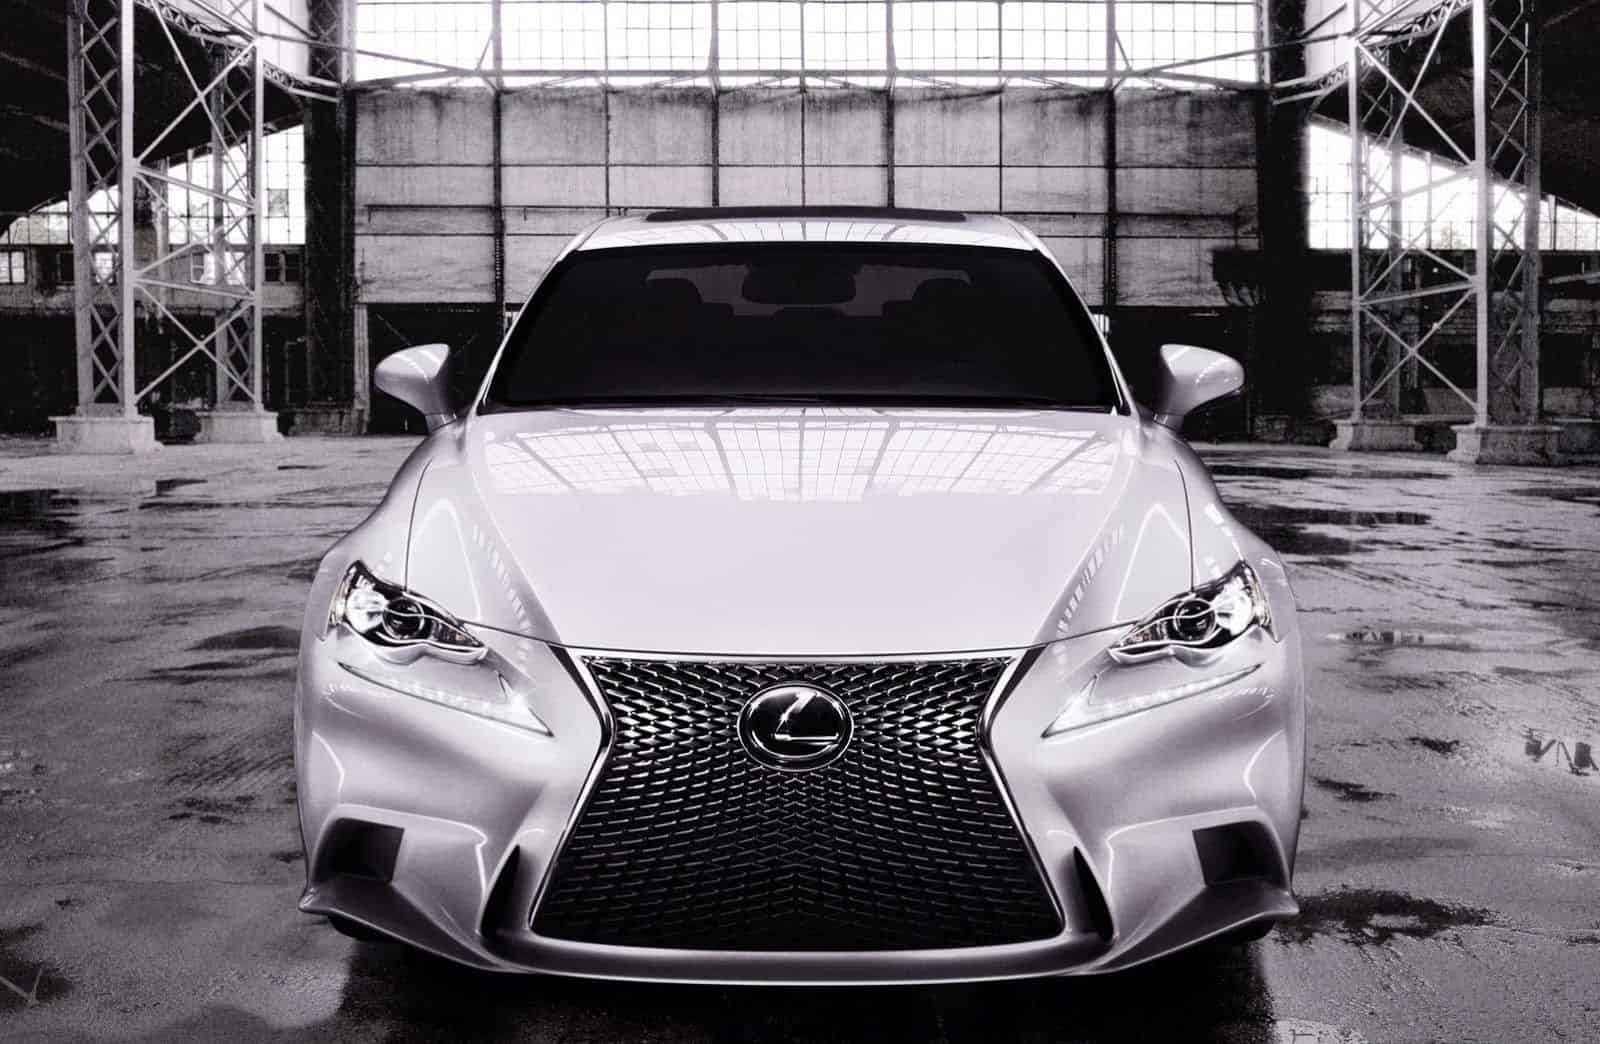 Best Luxury Cars 2014 with High Resolution Images, Seekyt